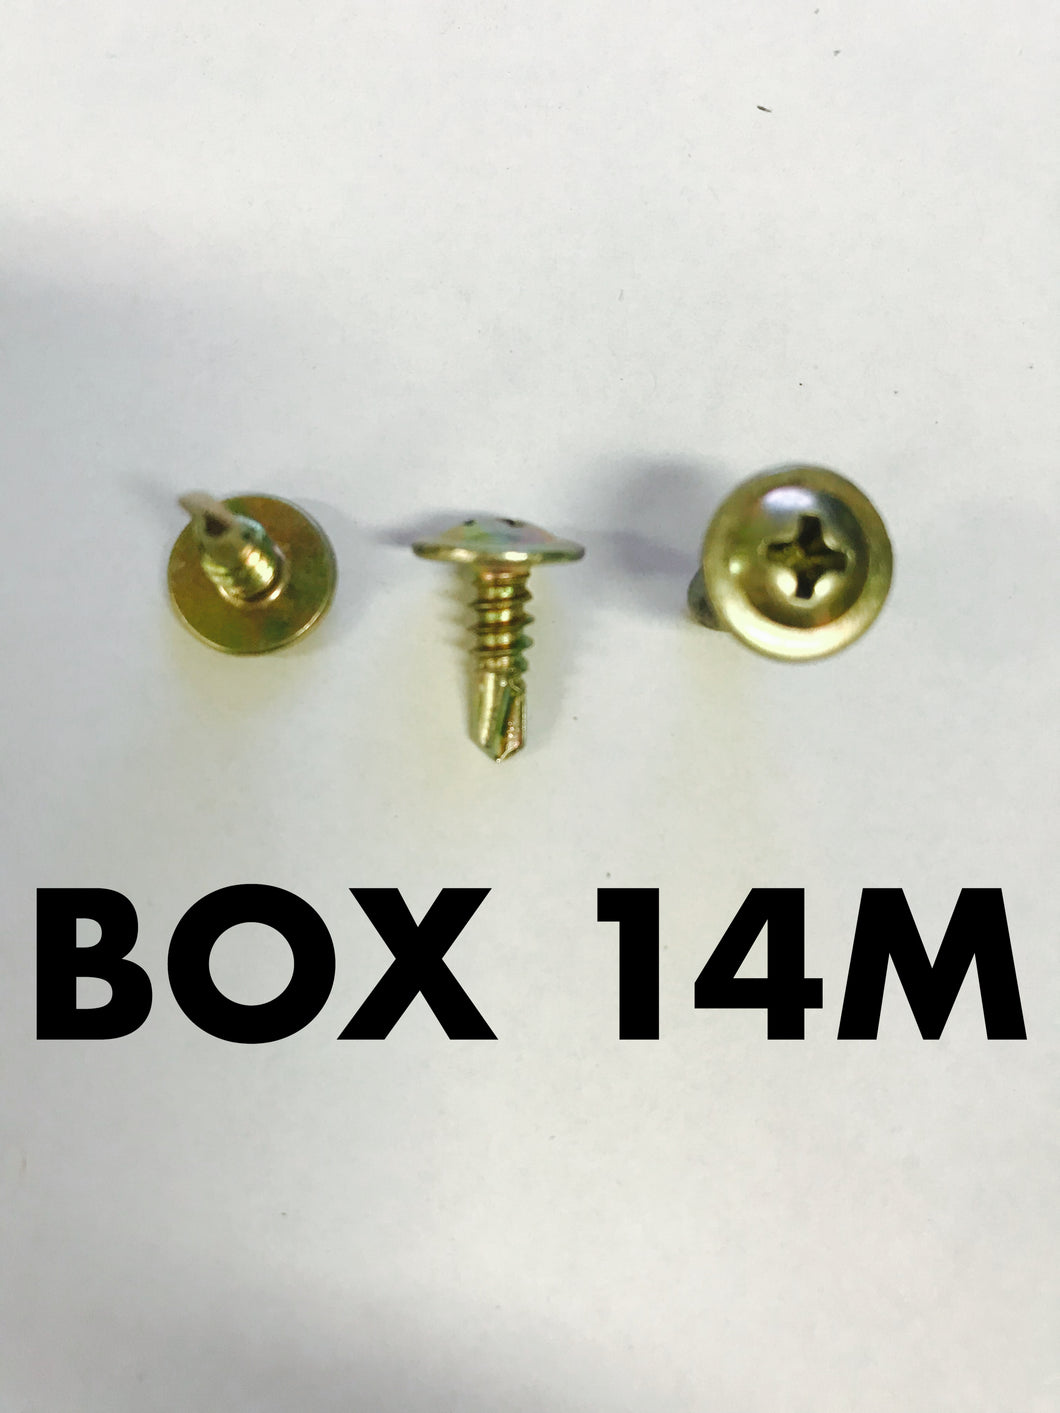 Carclips Box 14M 8g x 12mm Self Tapping Screw - Colourfast Auto